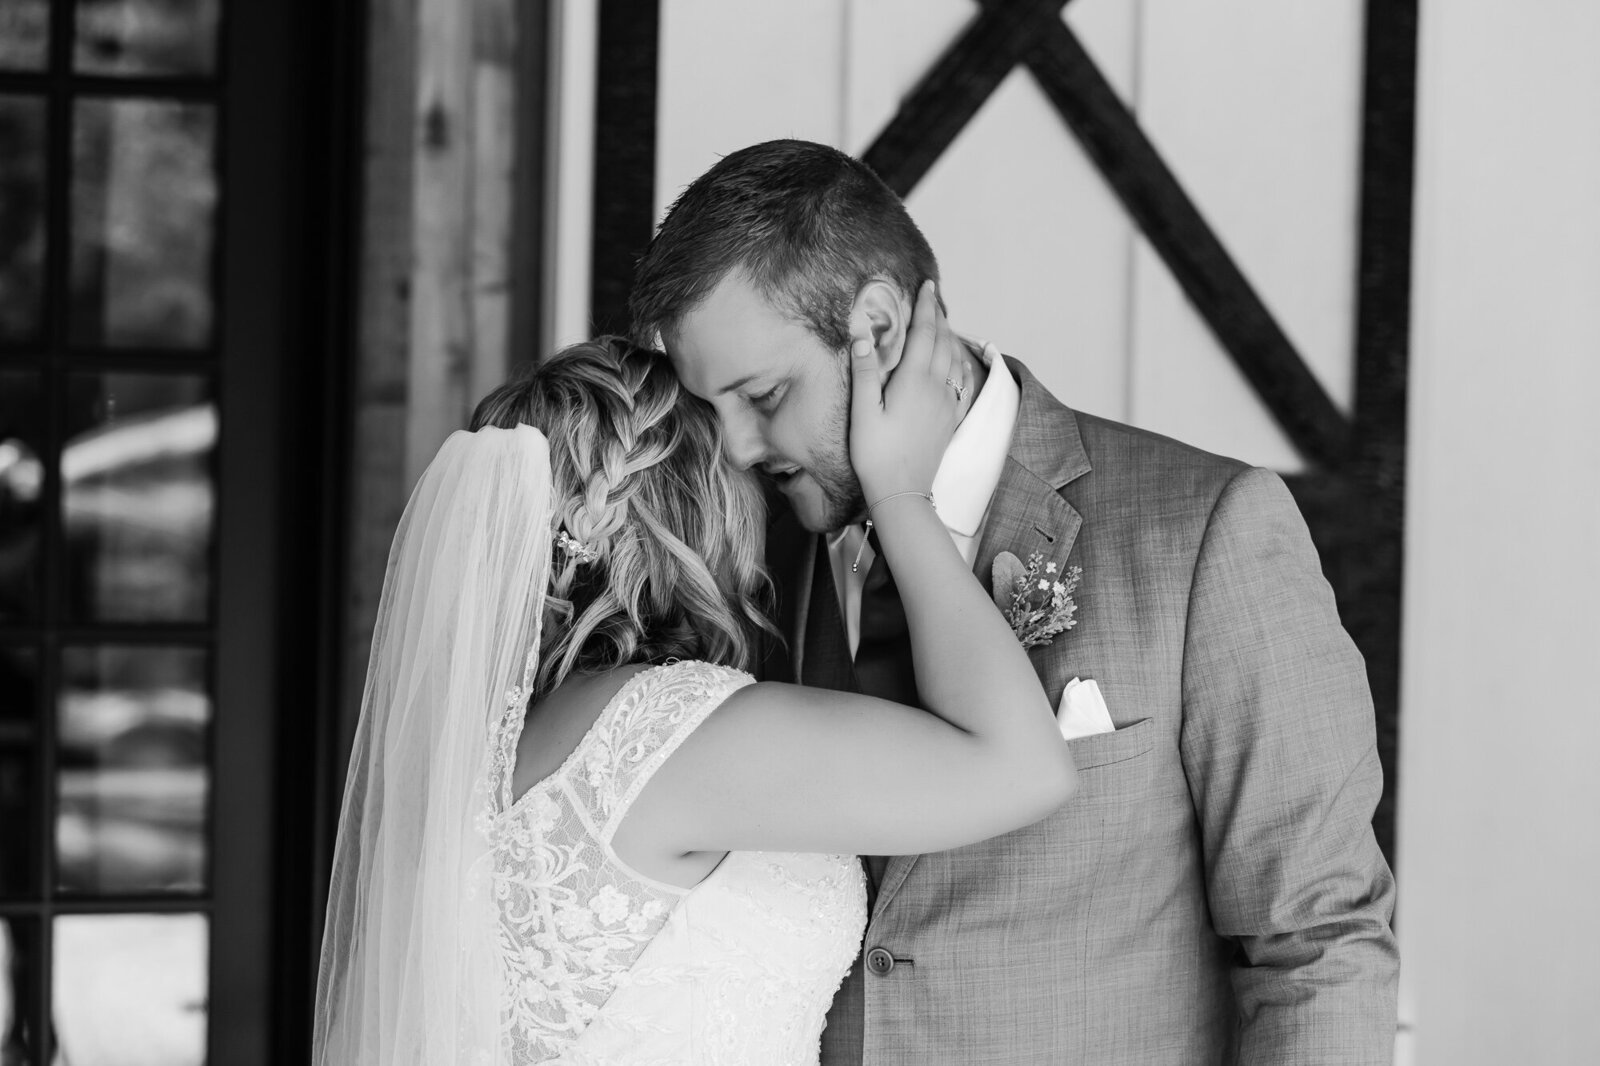 Emotional, candid photo of a first look between a bride and her groom before their wedding